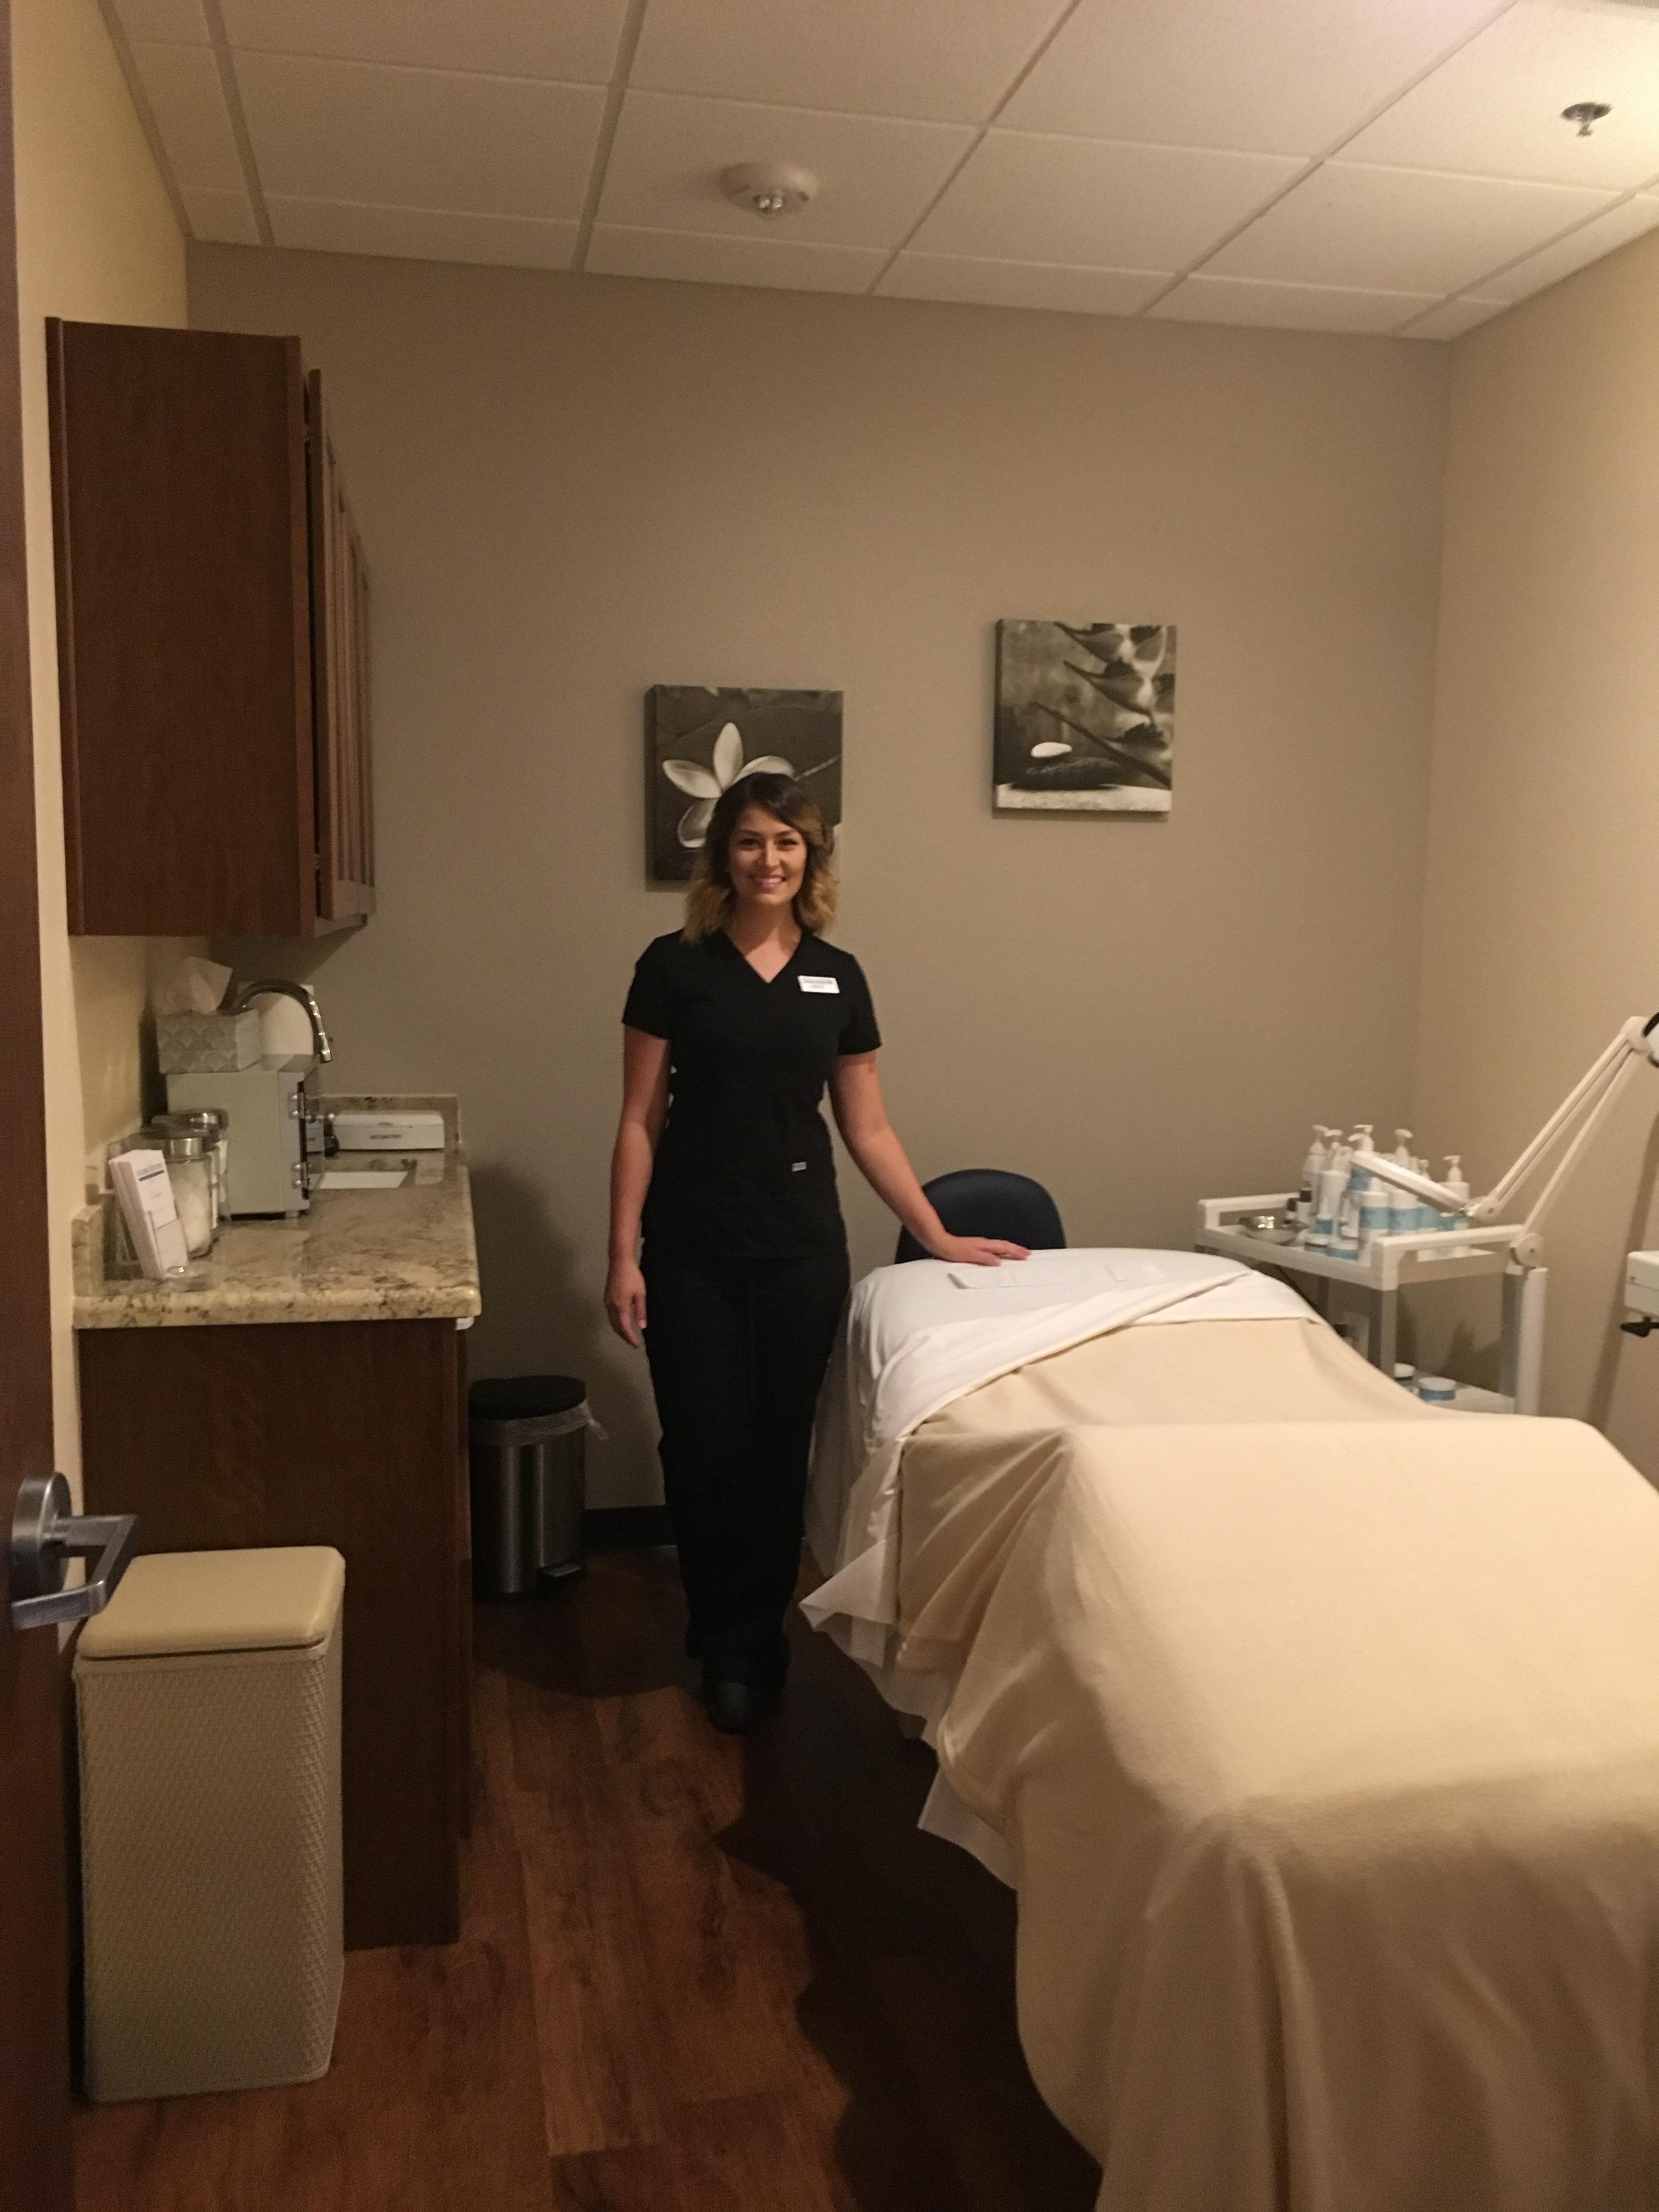 Our talented estheticians perform skin analyses, customized facials, microderm, peels, and more.